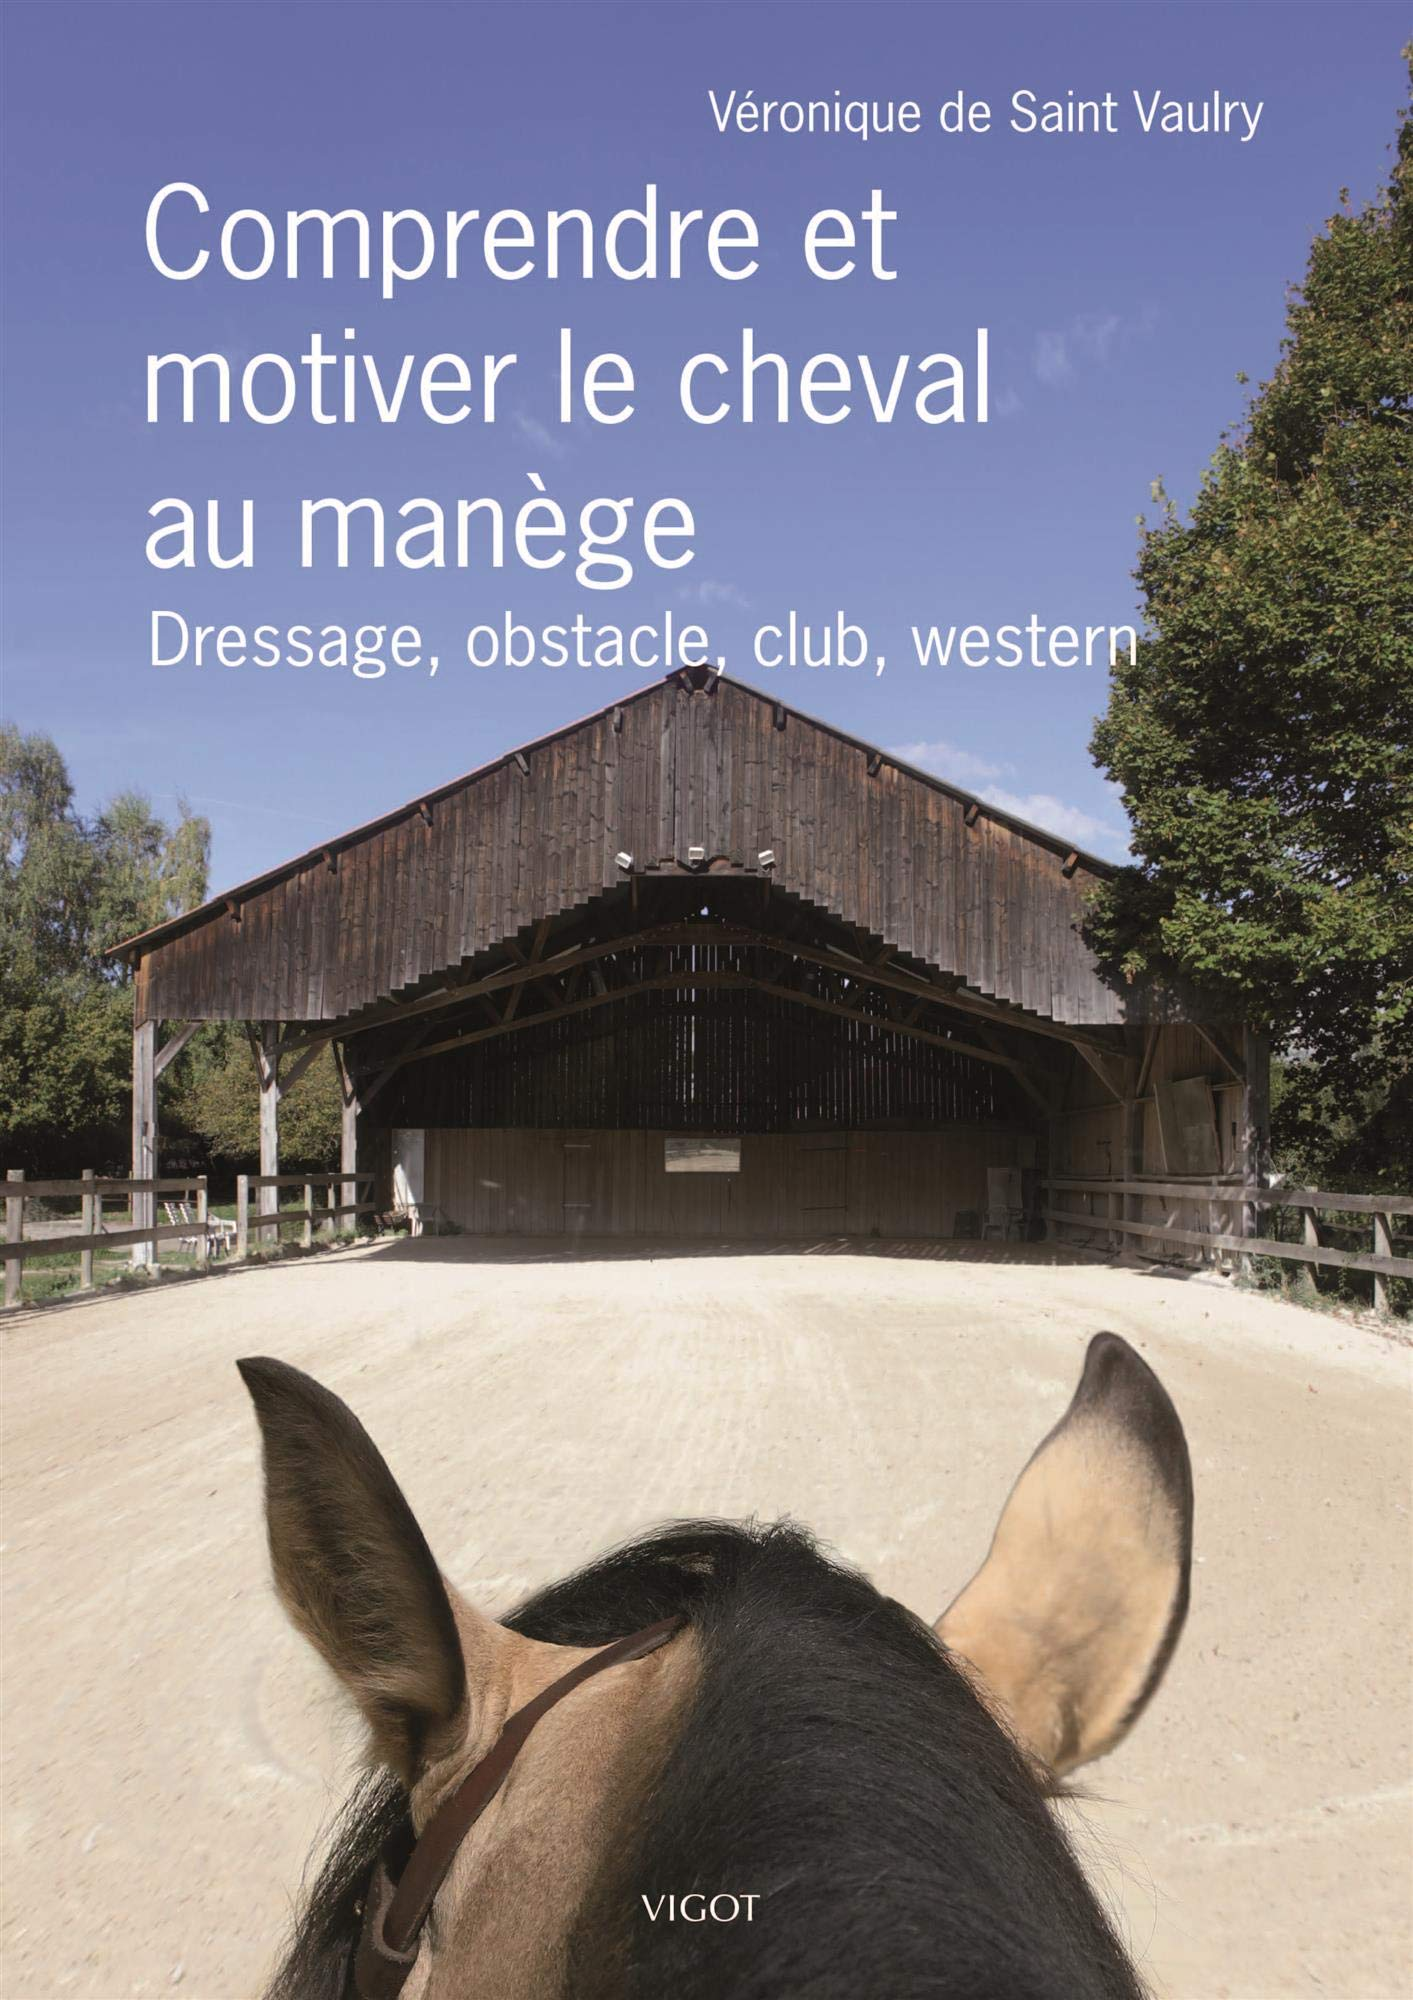 Comprendre et motiver le cheval au manège: Dressage, obstacle, club, western...